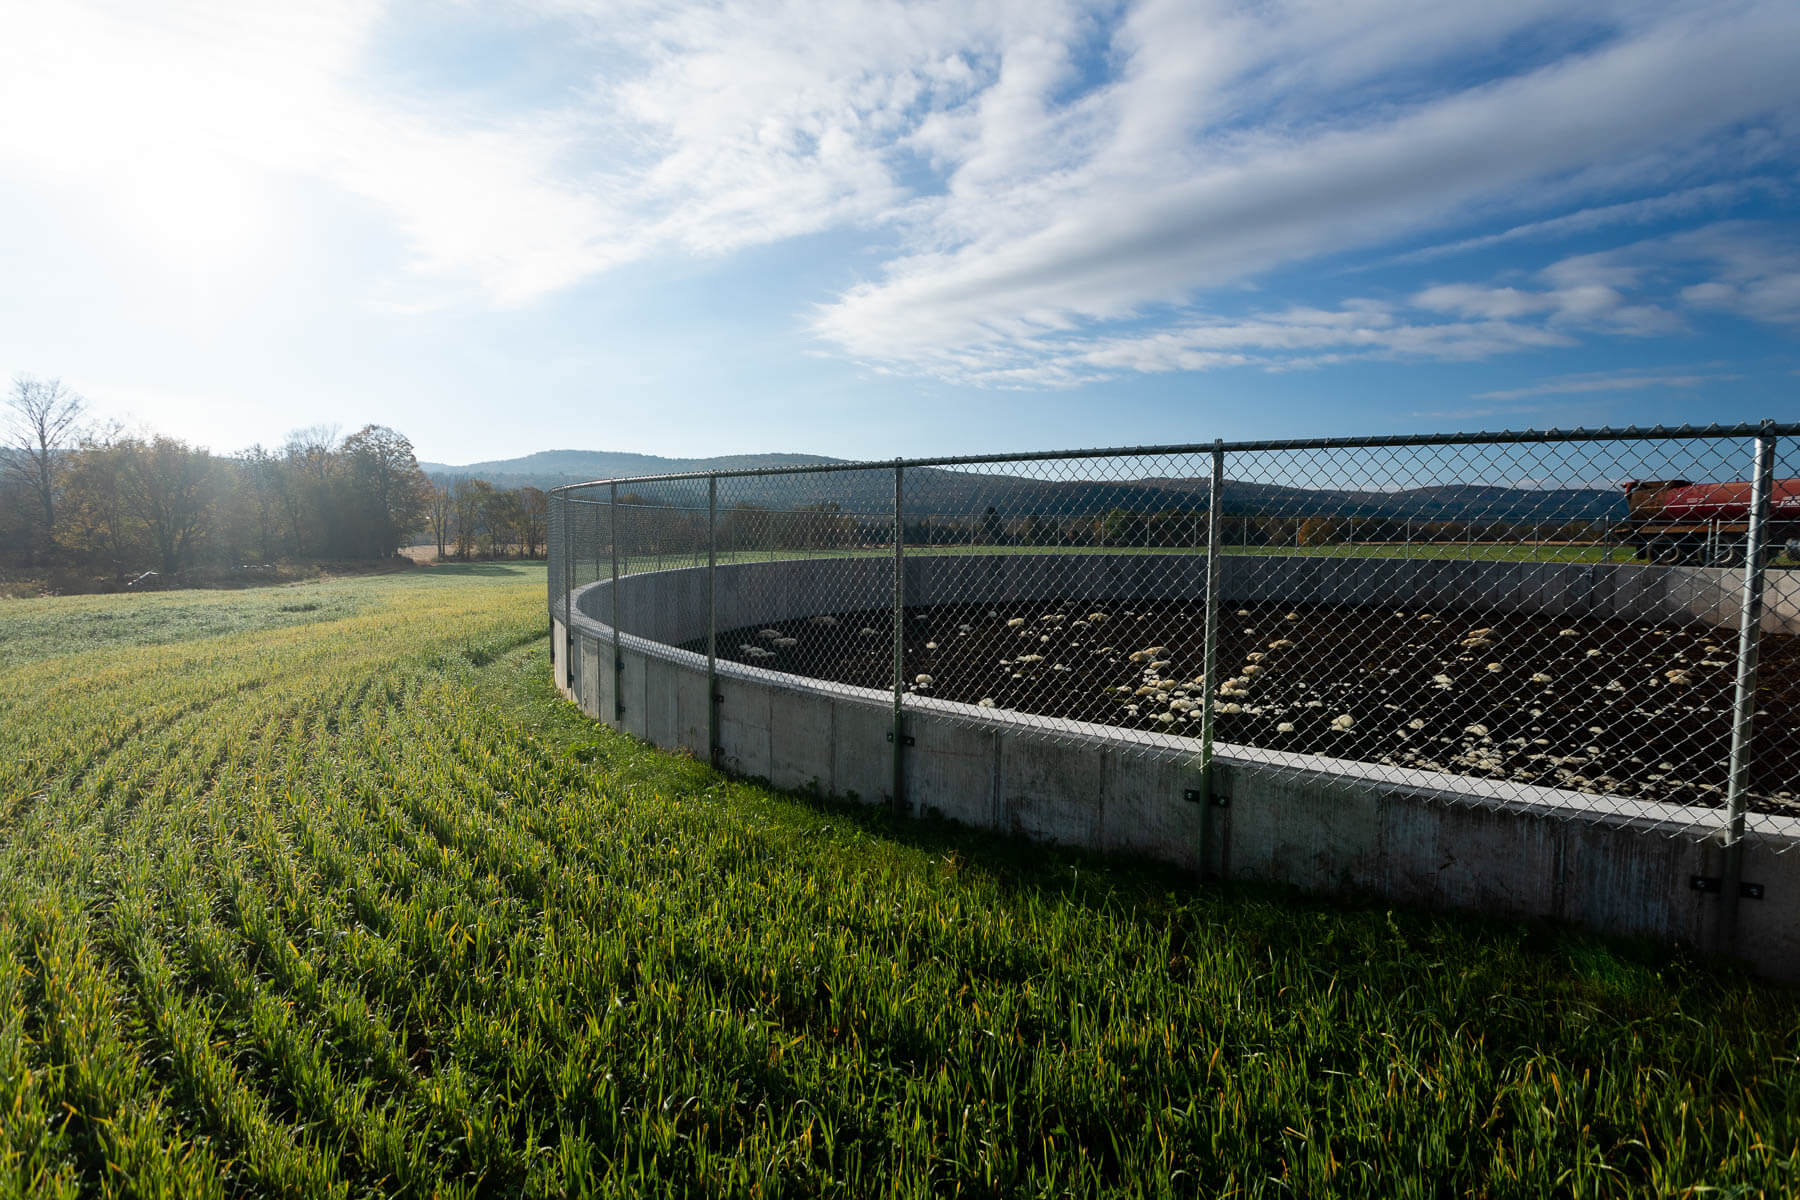 A large round manure pit next to expansive crops